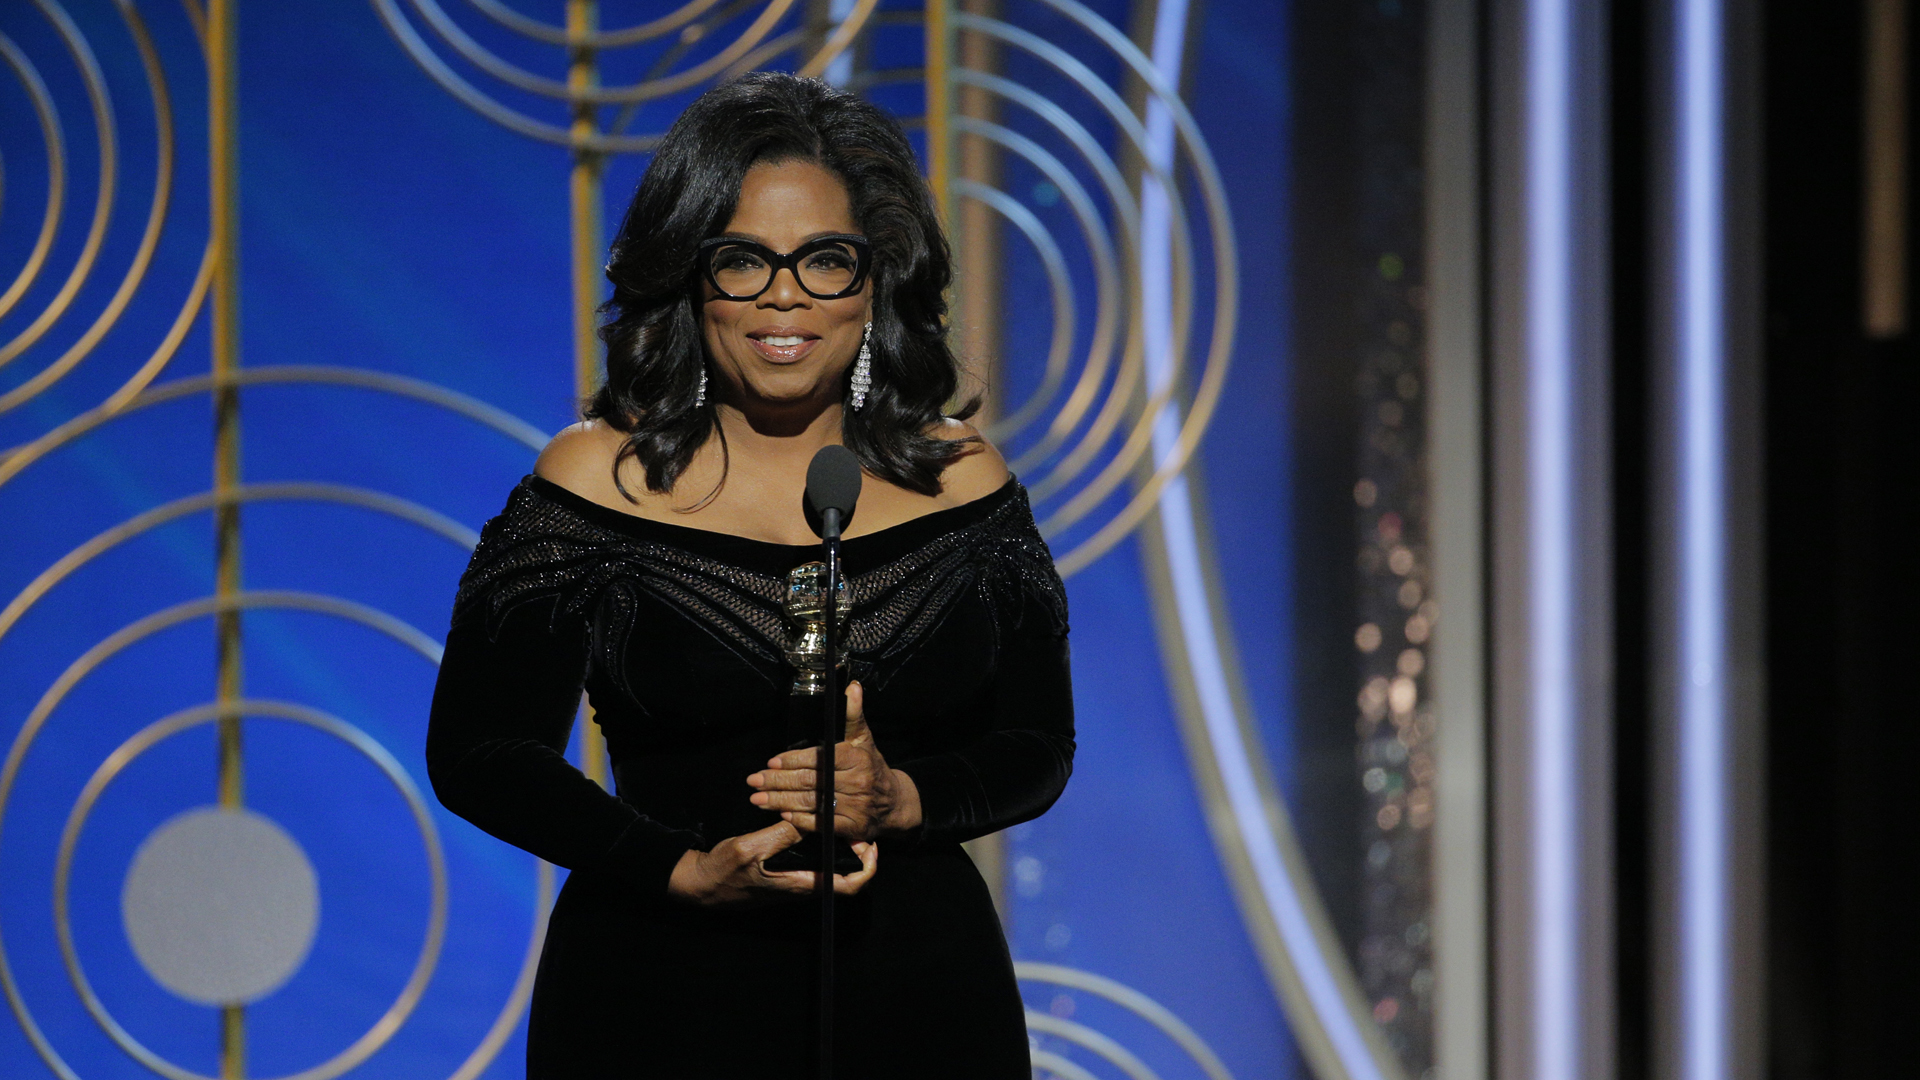 In this handout photo provided by NBCUniversal, Oprah Winfrey accepts the 2018 Cecil B. DeMille Award speaks onstage during the 75th Annual Golden Globe Awards at The Beverly Hilton Hotel on January 7, 2018s. (Credit: Paul Drinkwater/NBCUniversal via Getty Images)